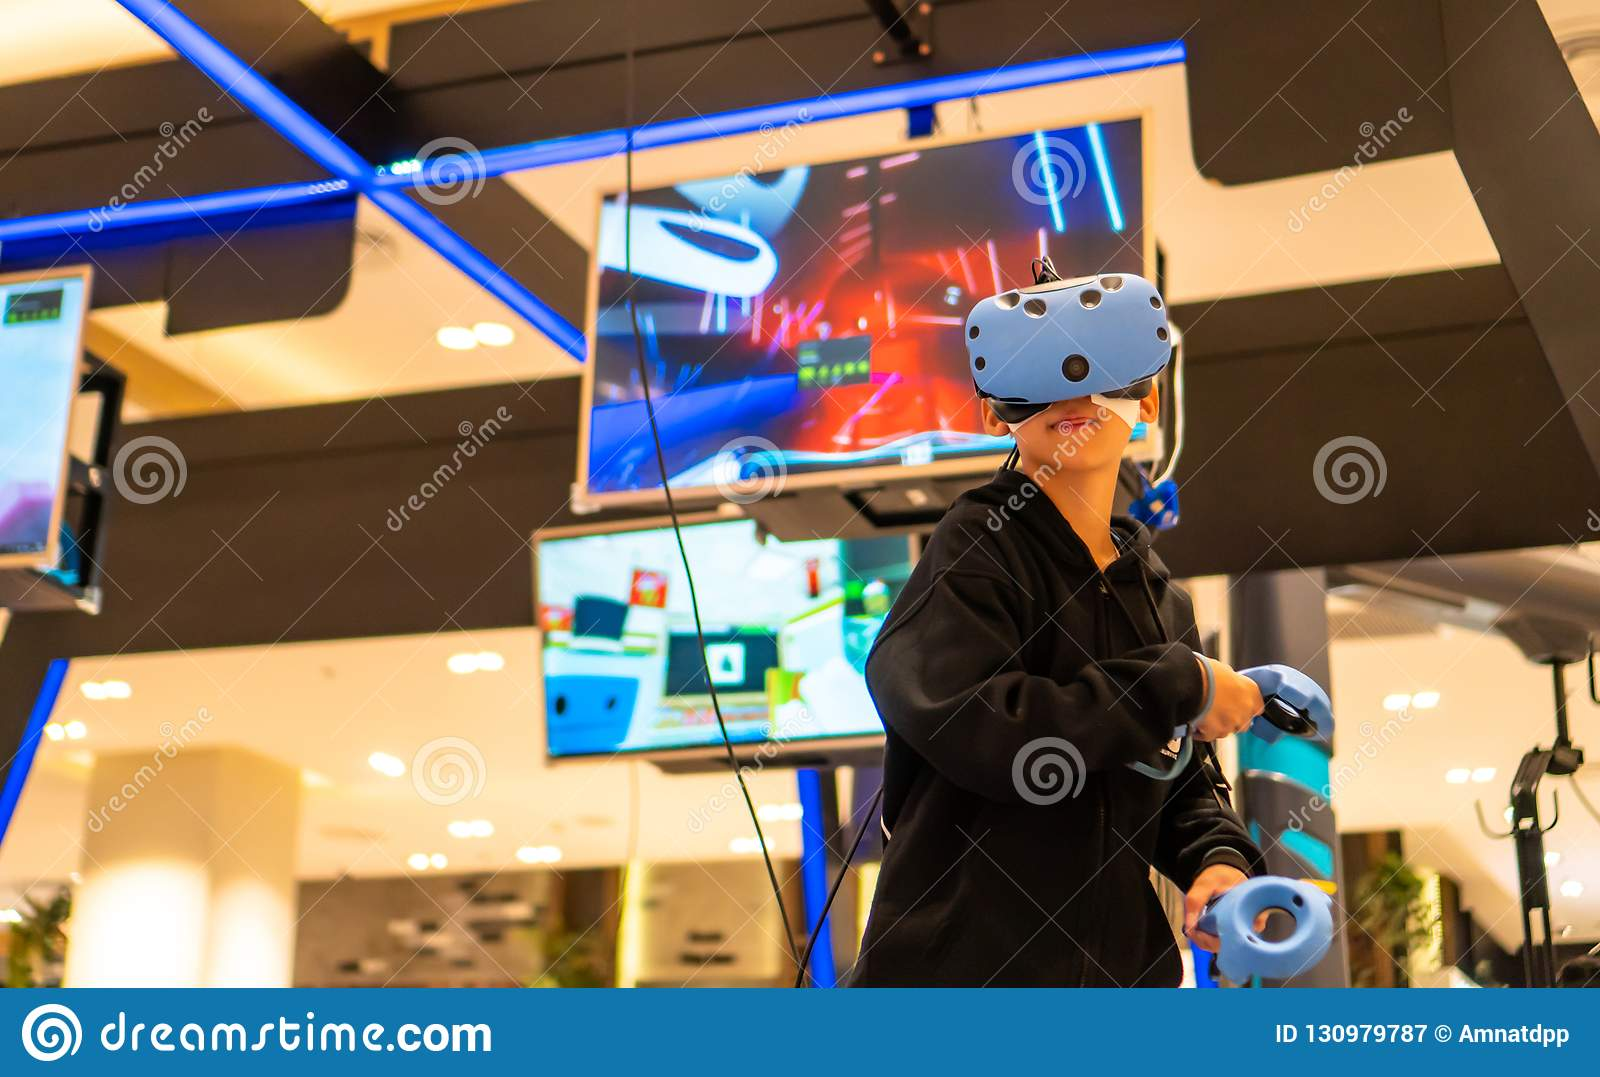 Asian people using VR for watch and play game